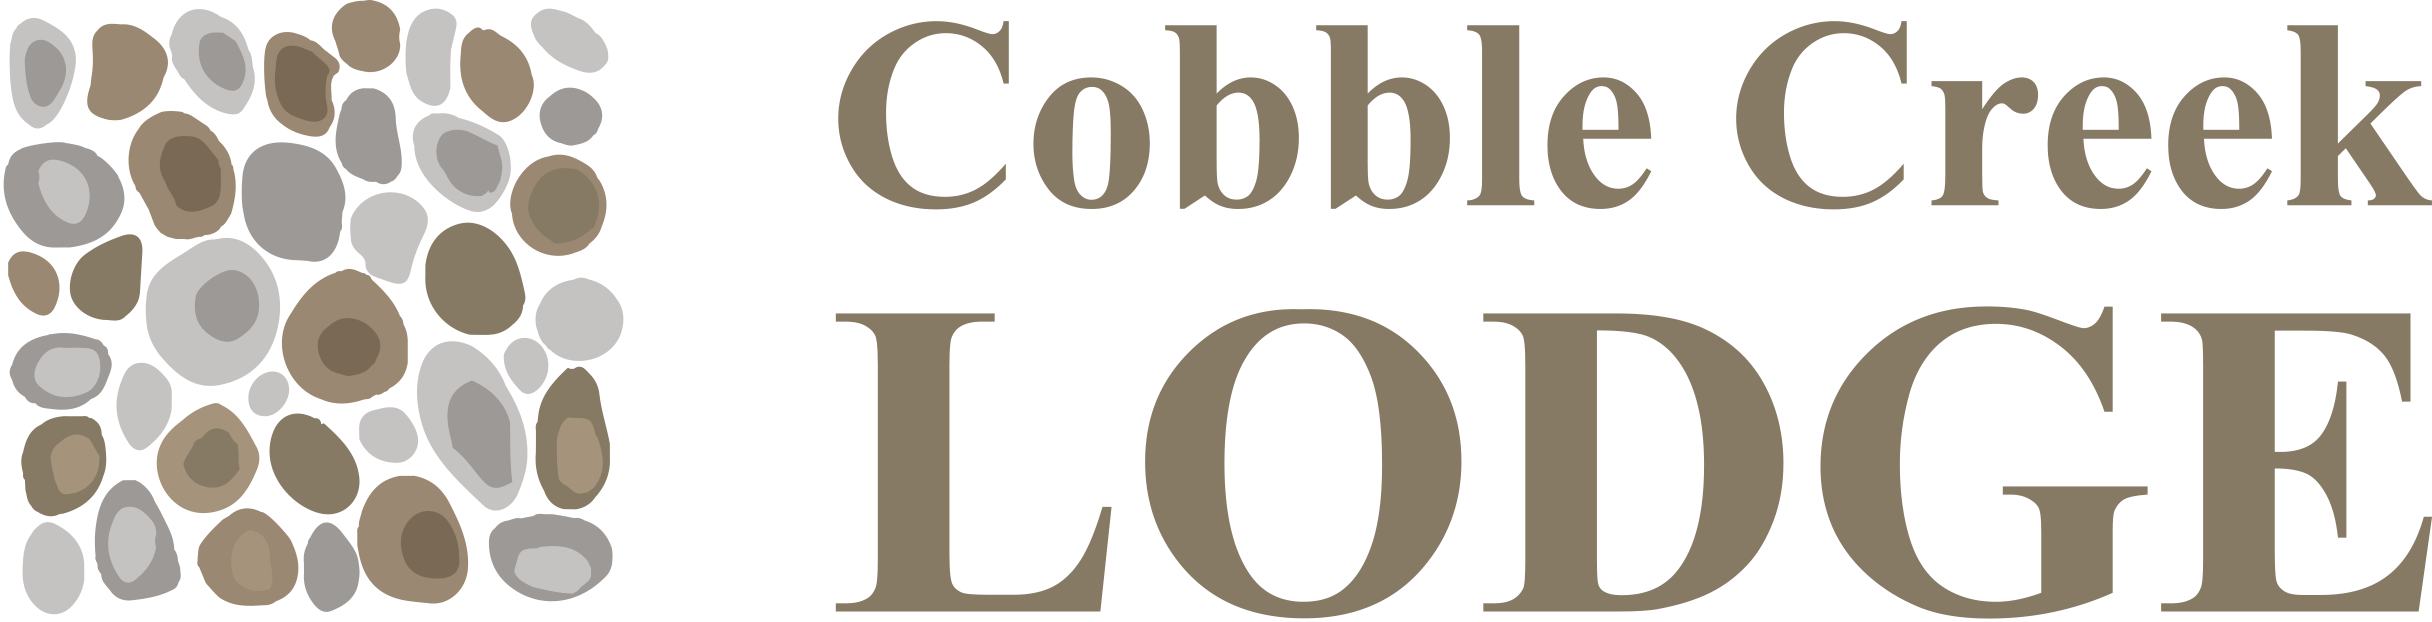 Cobble Creek Lodge